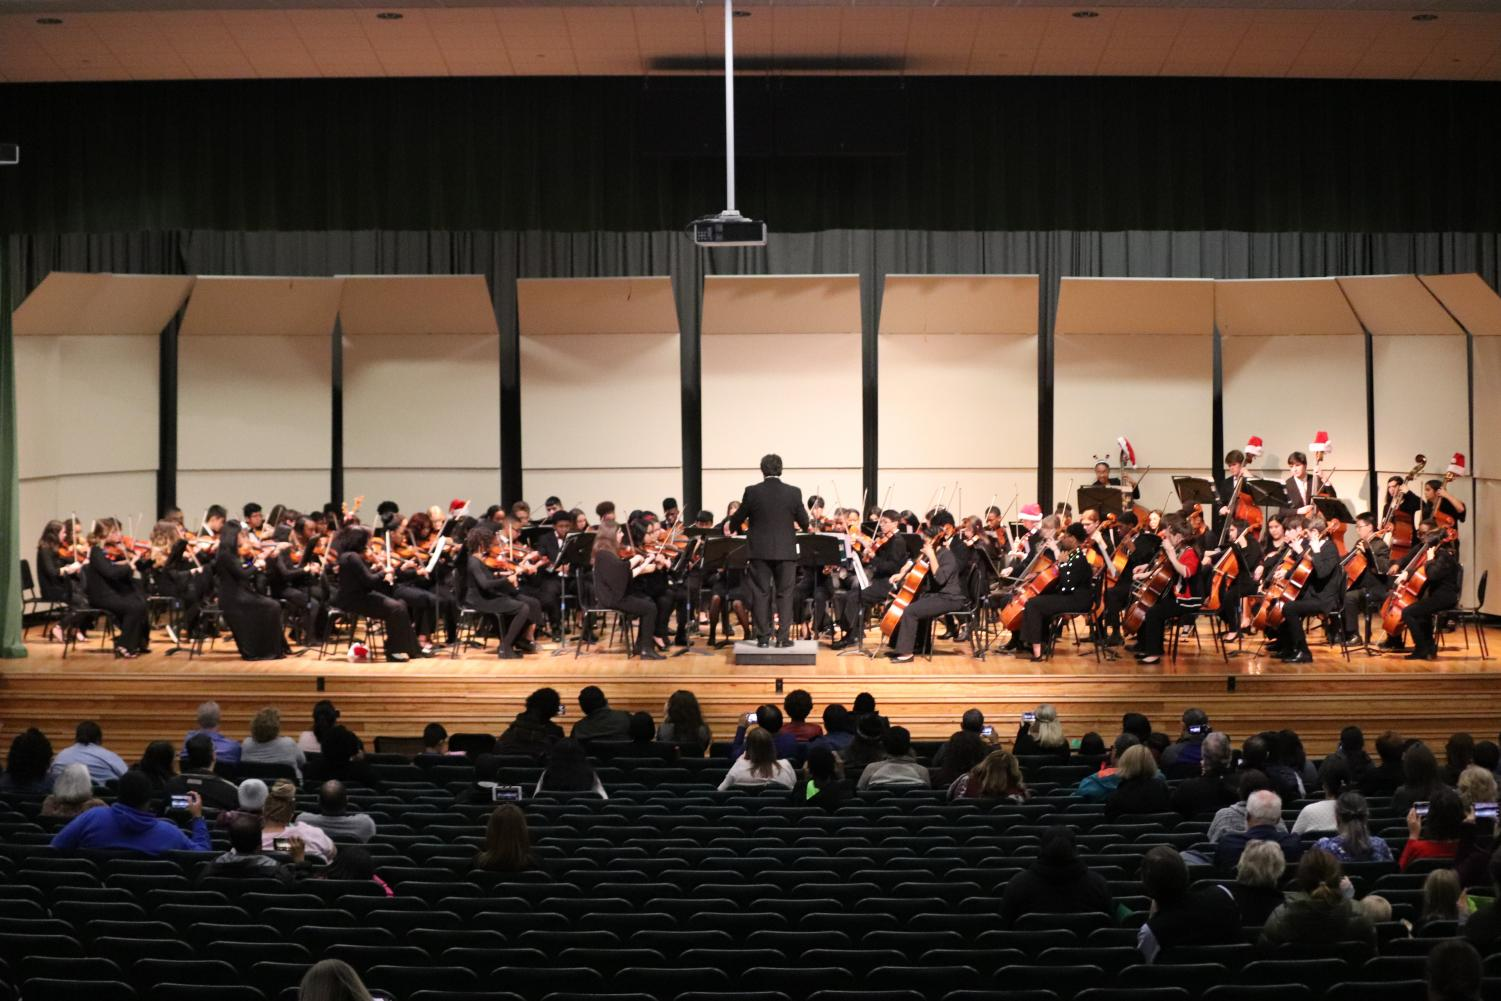 """The Intermediate Orchestra and Advanced Honors Orchestra combined forces to play two traditional holiday finale pieces. They performed """"We Need a Little Christmas"""" as well as a """"Mother Ginger"""" from the play """"The Nutcracker."""""""